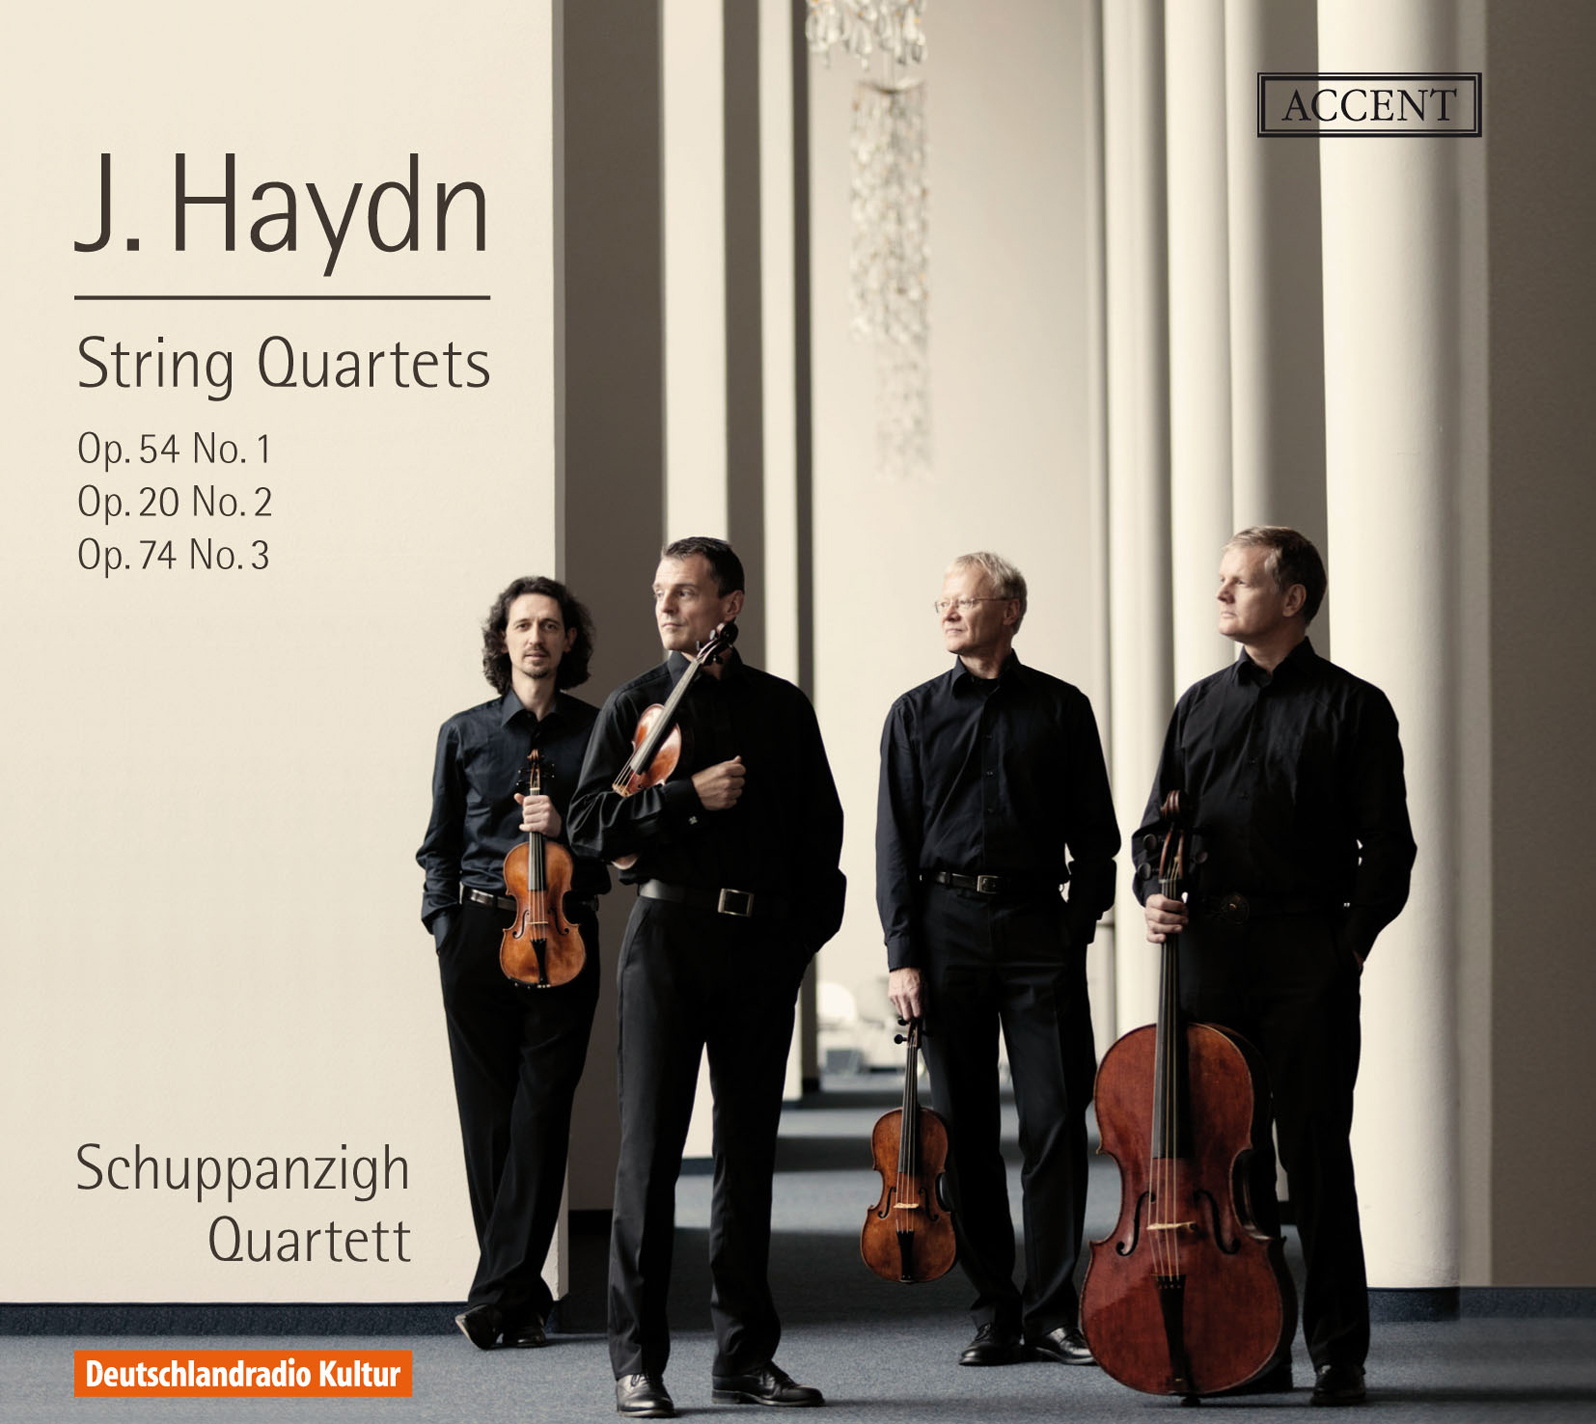 String Quartet No. 43 in G Major, Op. 54, No. 1, Hob.III:58, String Quartet No. 43 in G Major, Op. 54, No. 1, Hob.III:58: II. Allegretto